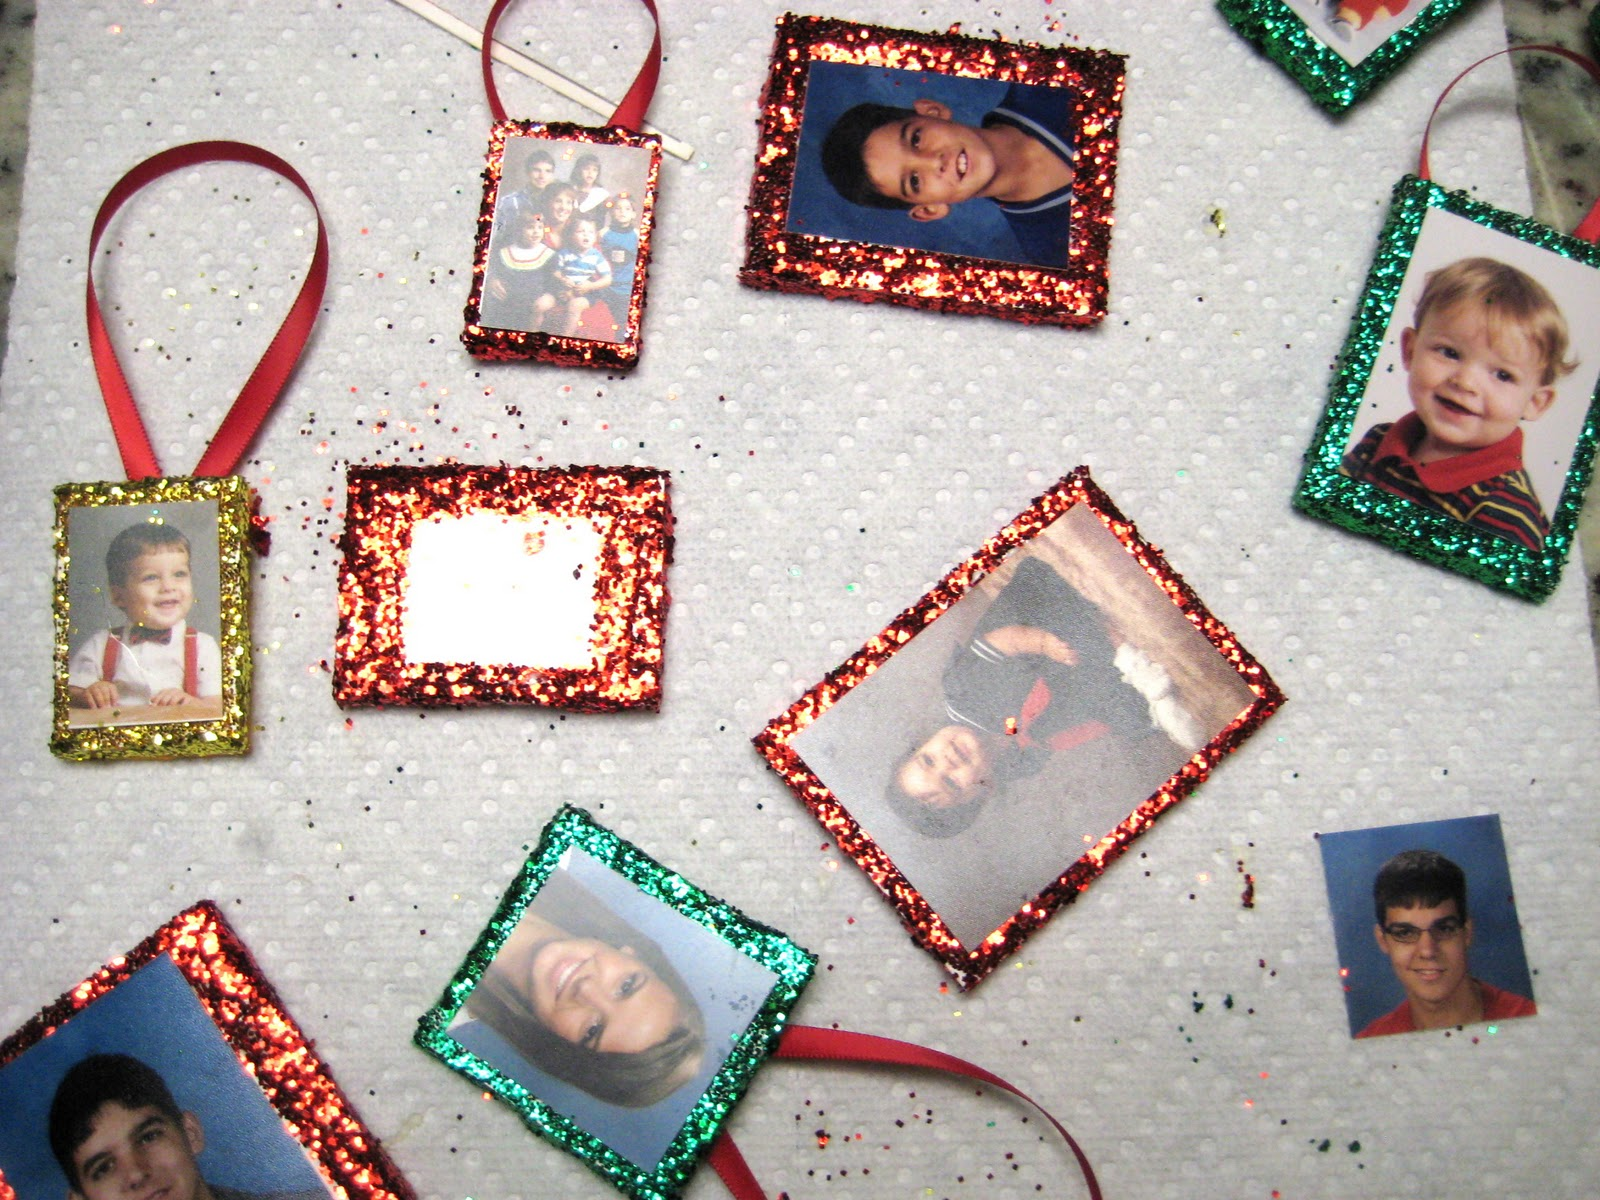 Christmas tree picture frame ornaments - Handmade Christmas Ornaments